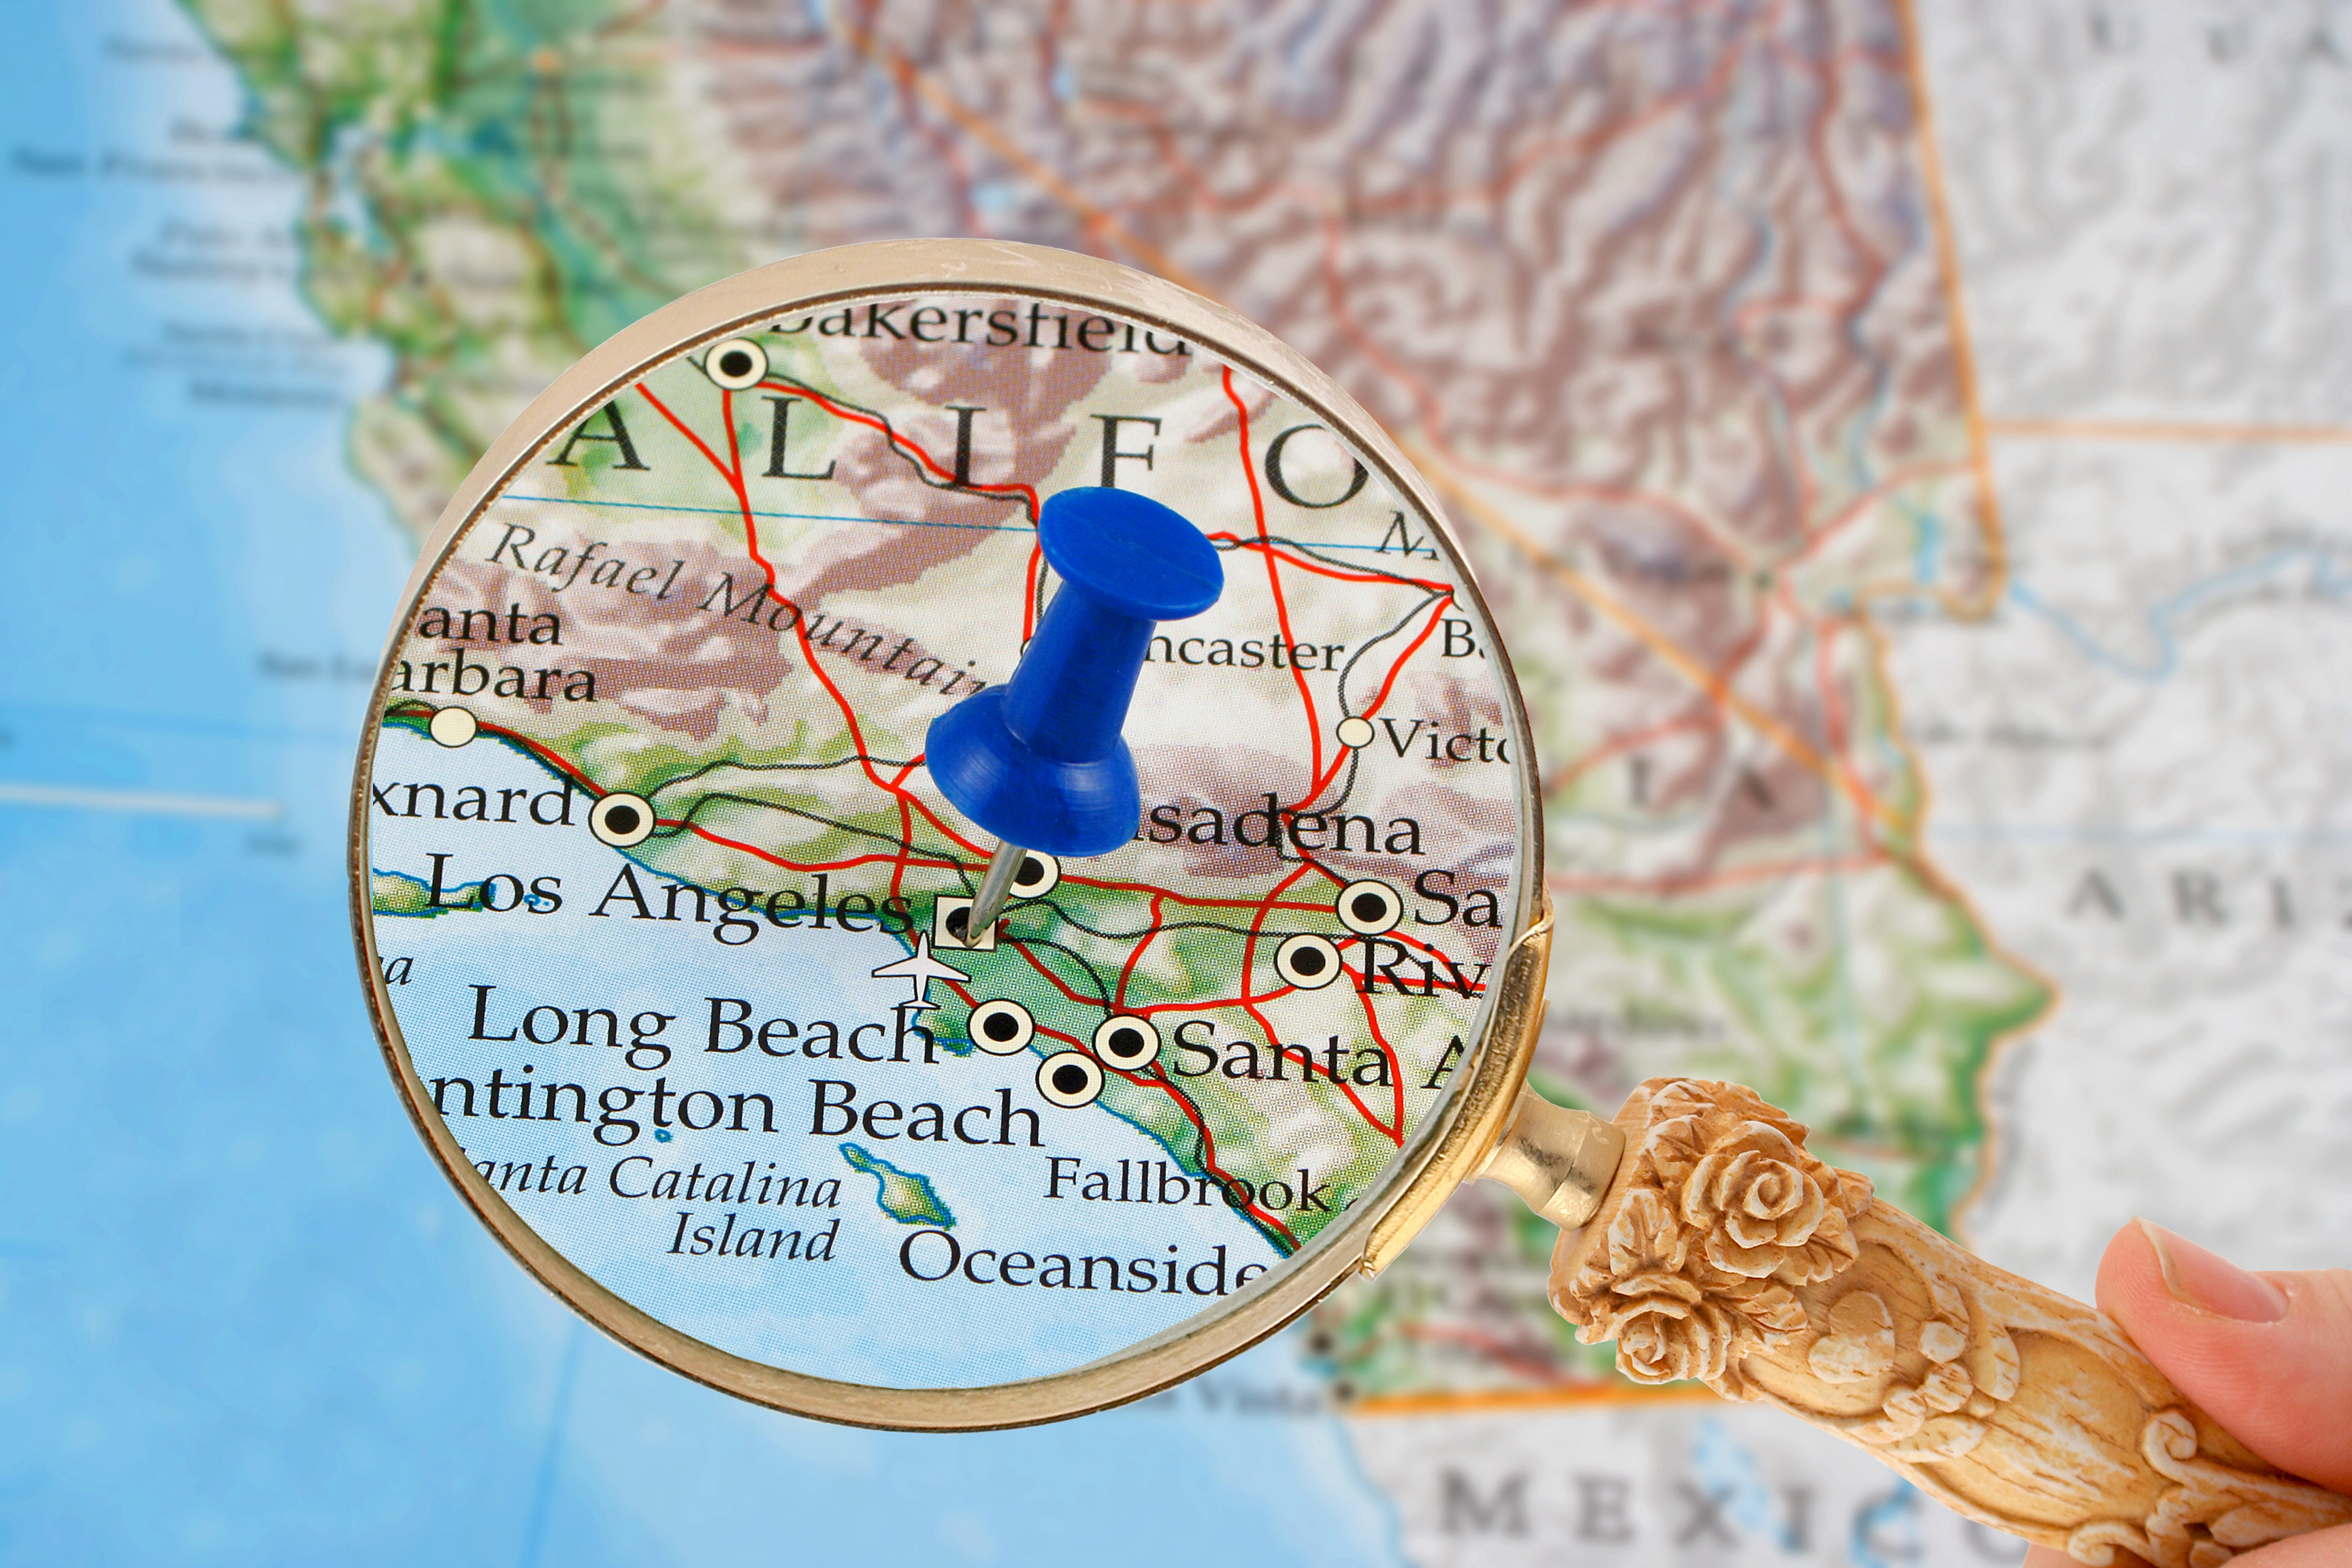 bigstock-Los-Angeles-Map-1331590